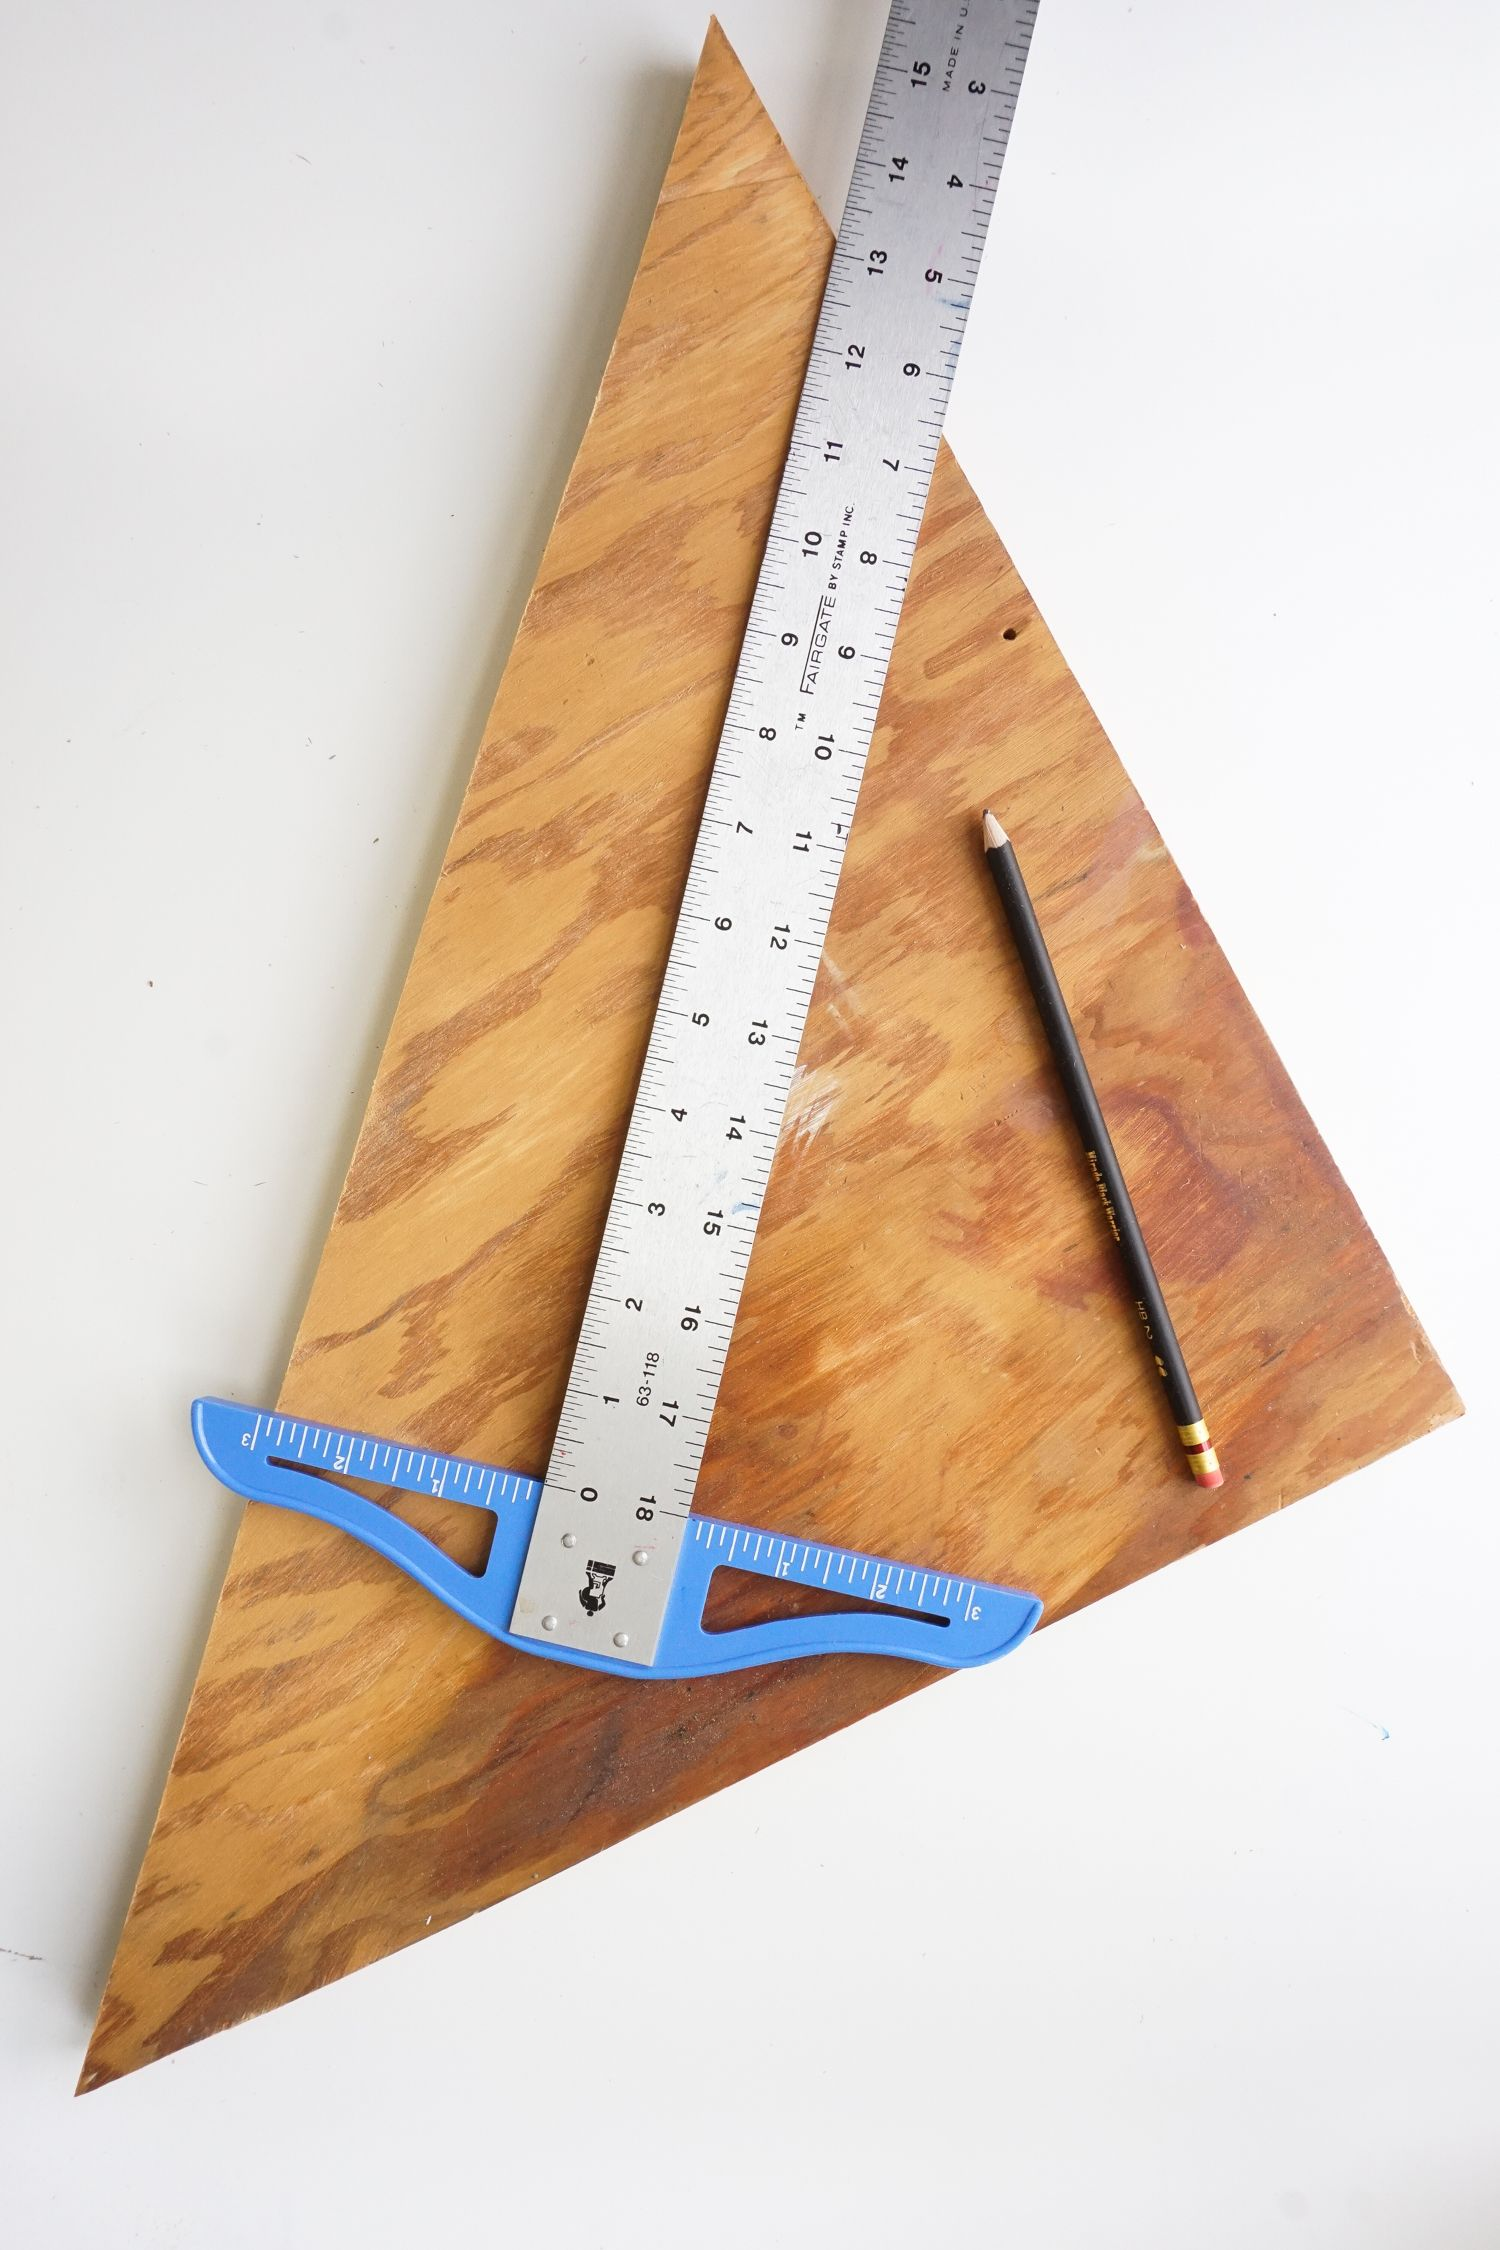 DIY Office Organizer Project - cut board